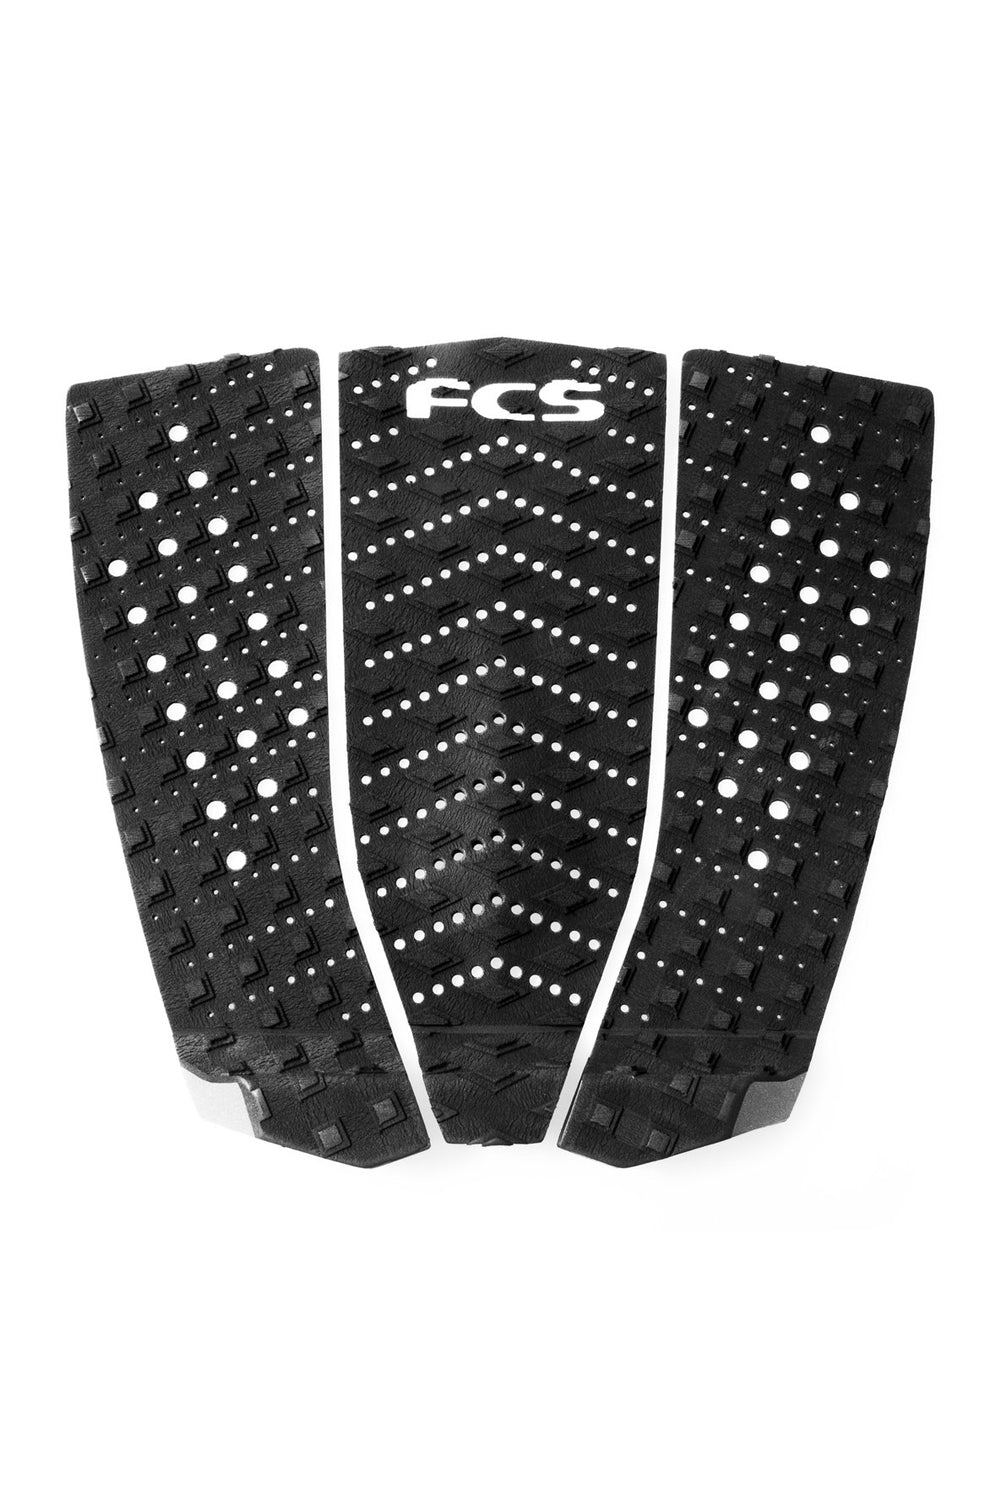 FCS T3 - Wide Traction Pad